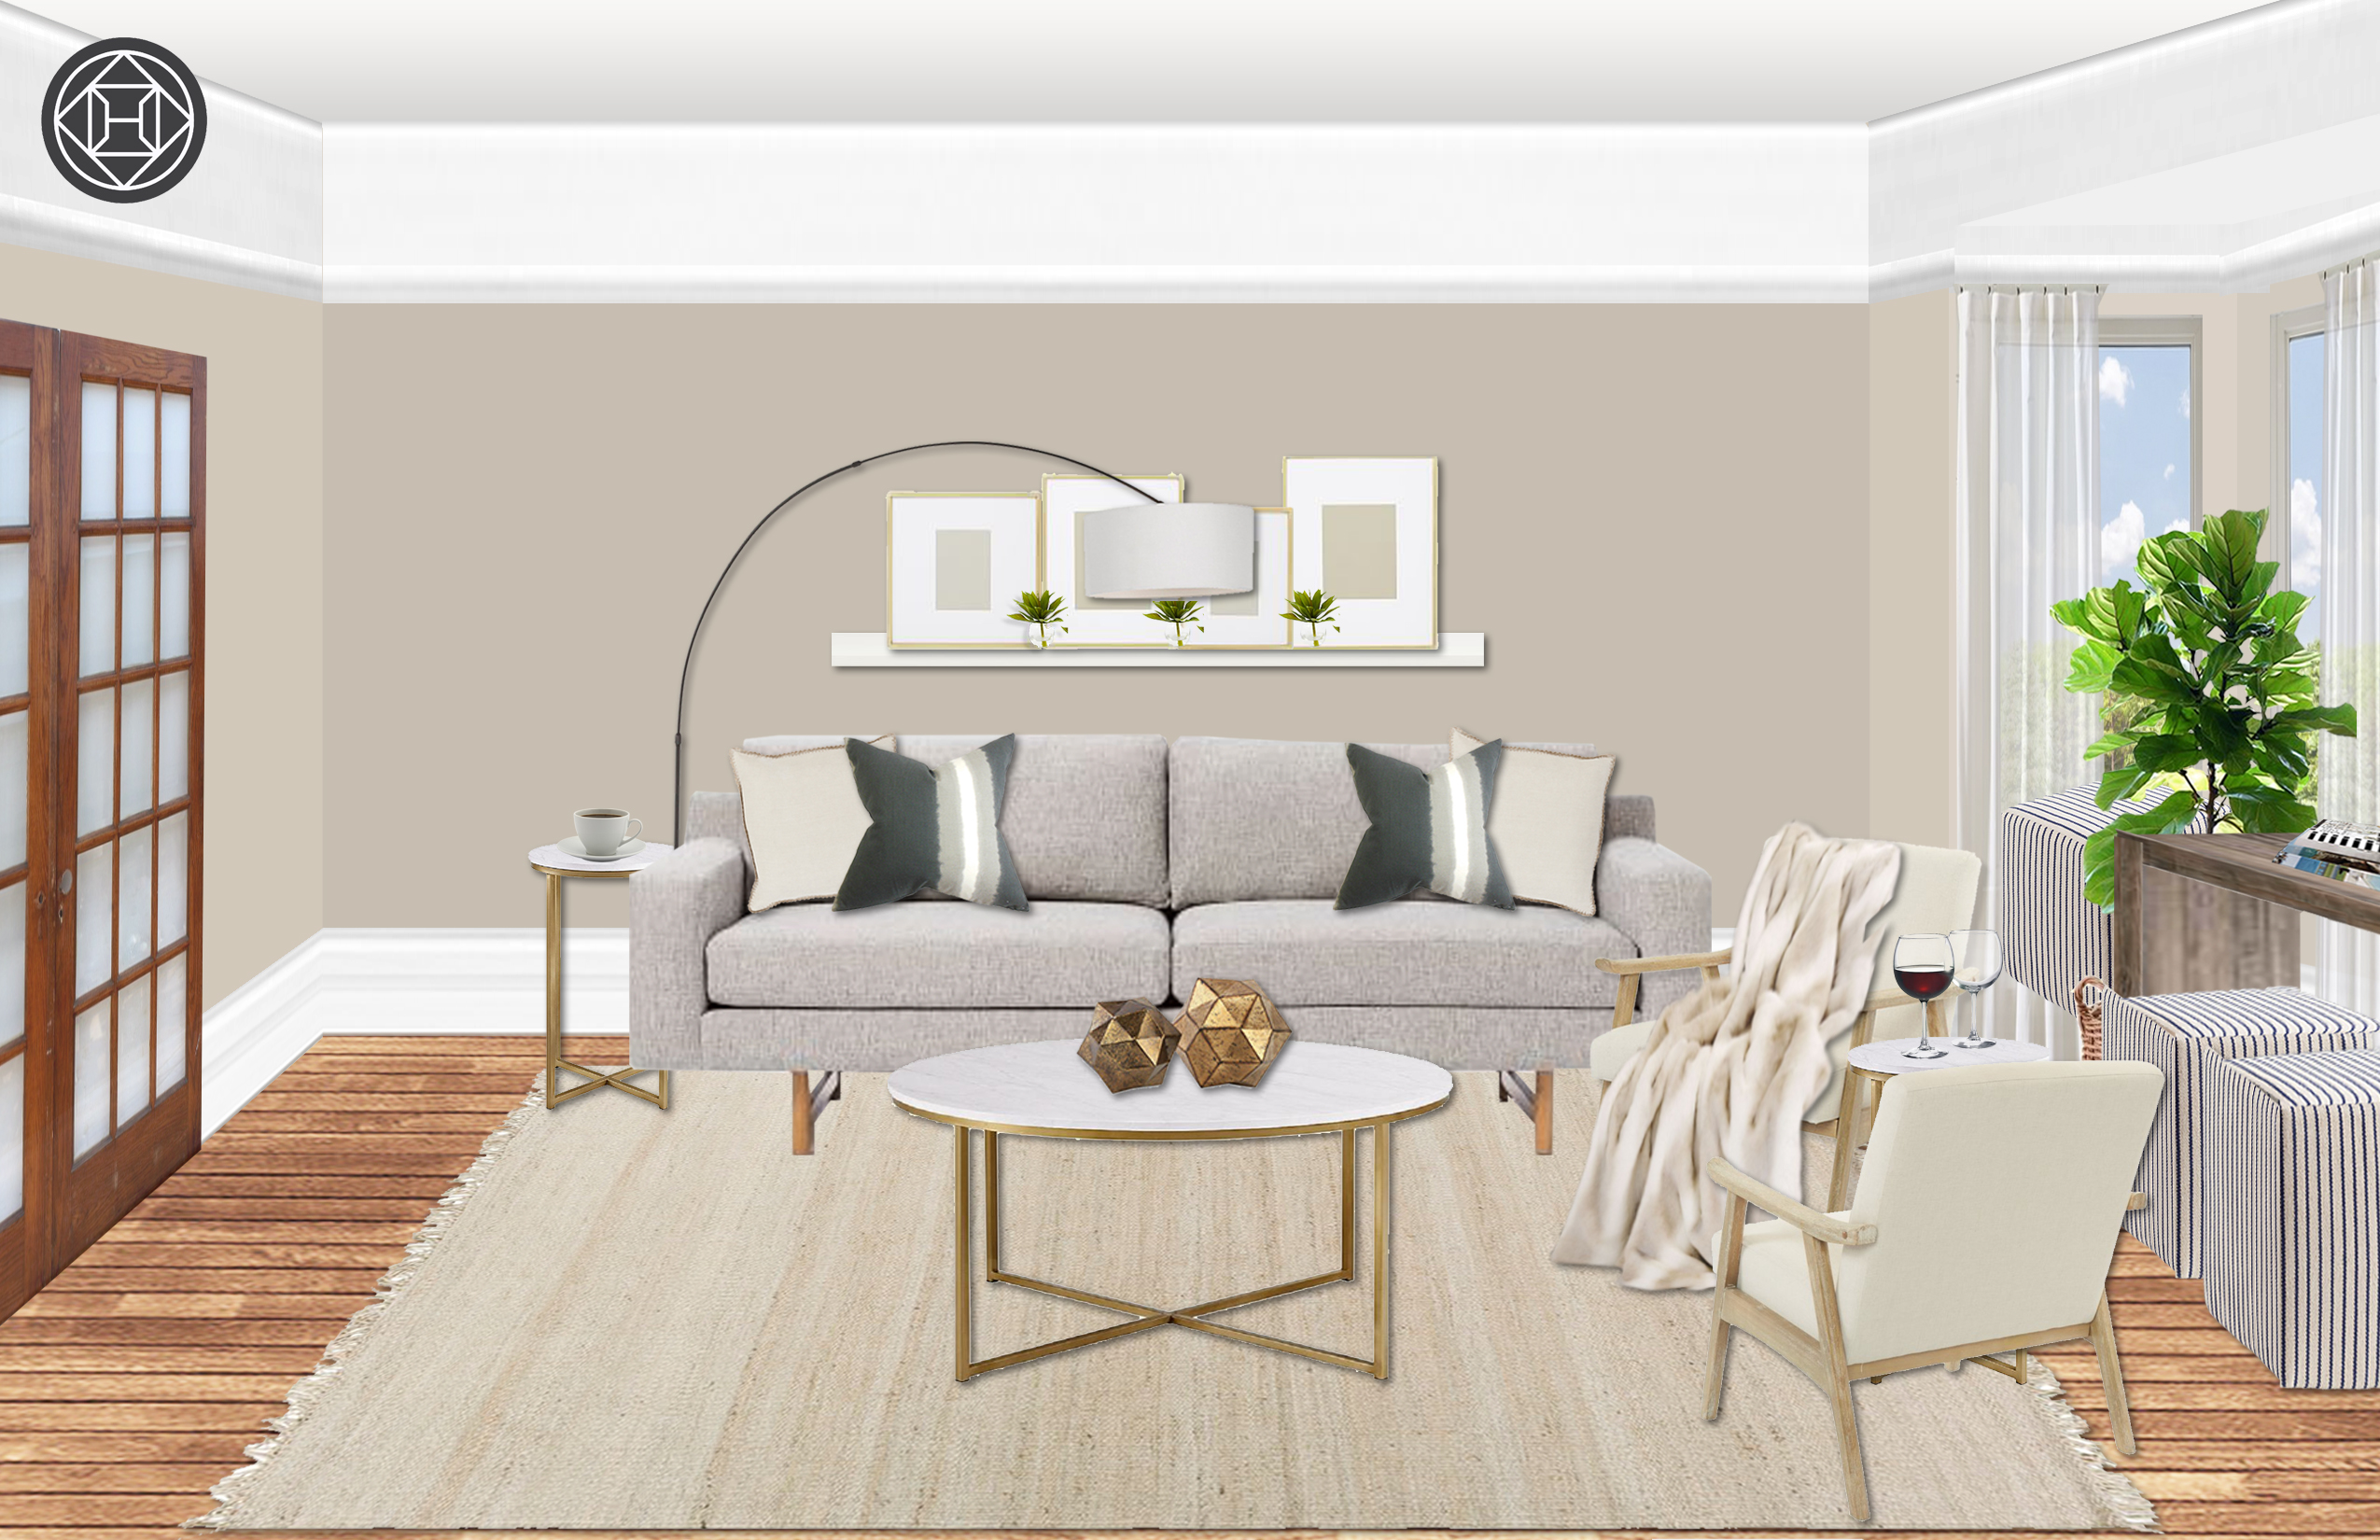 Eclectic Minimal Living Room Design By Havenly Interior